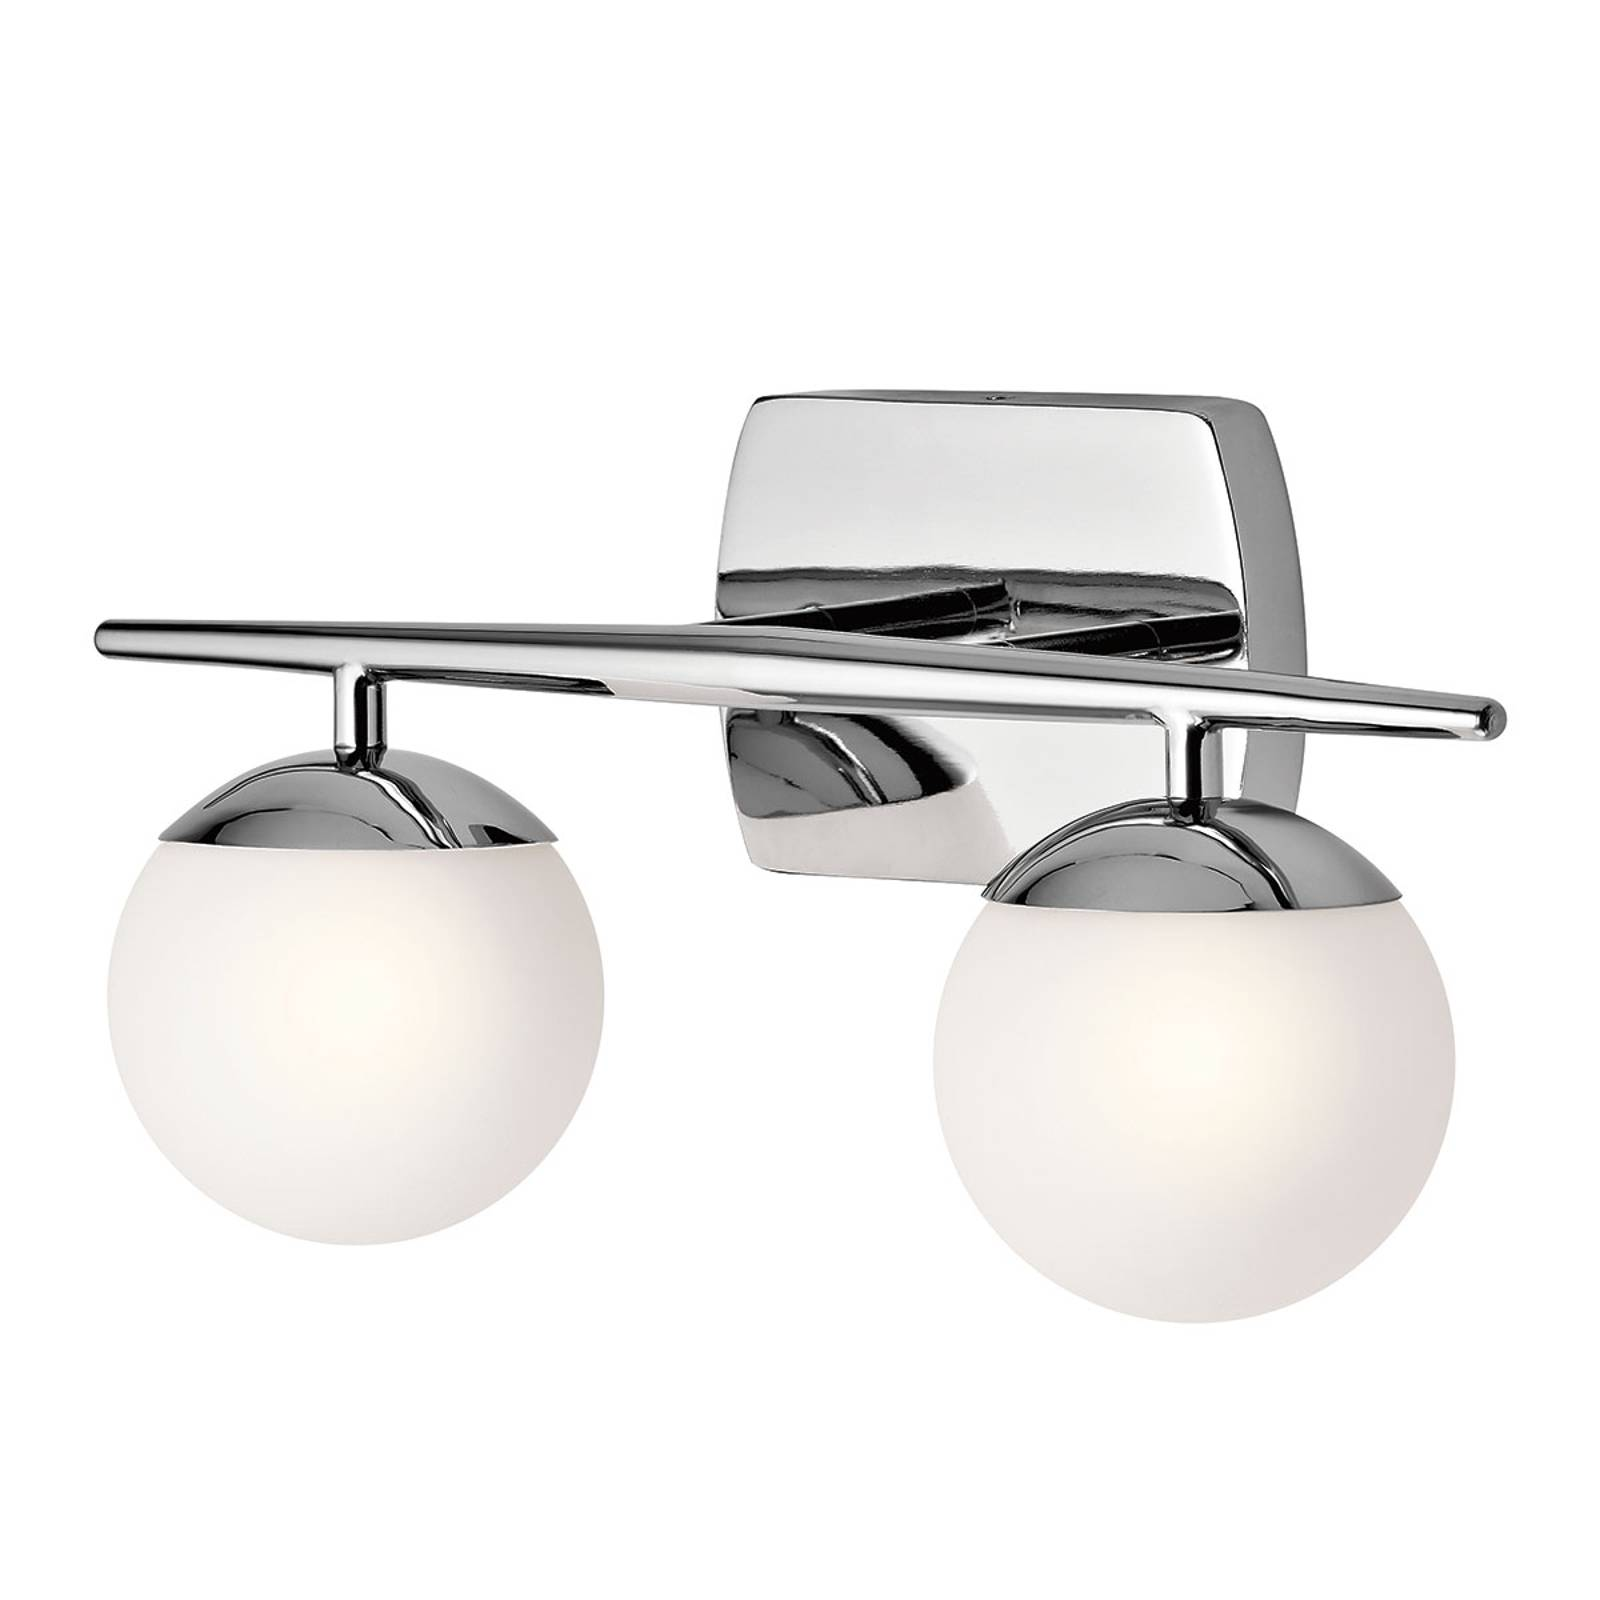 Two-bulb LED bathroom wall light Jasper, elegant from KICHLER